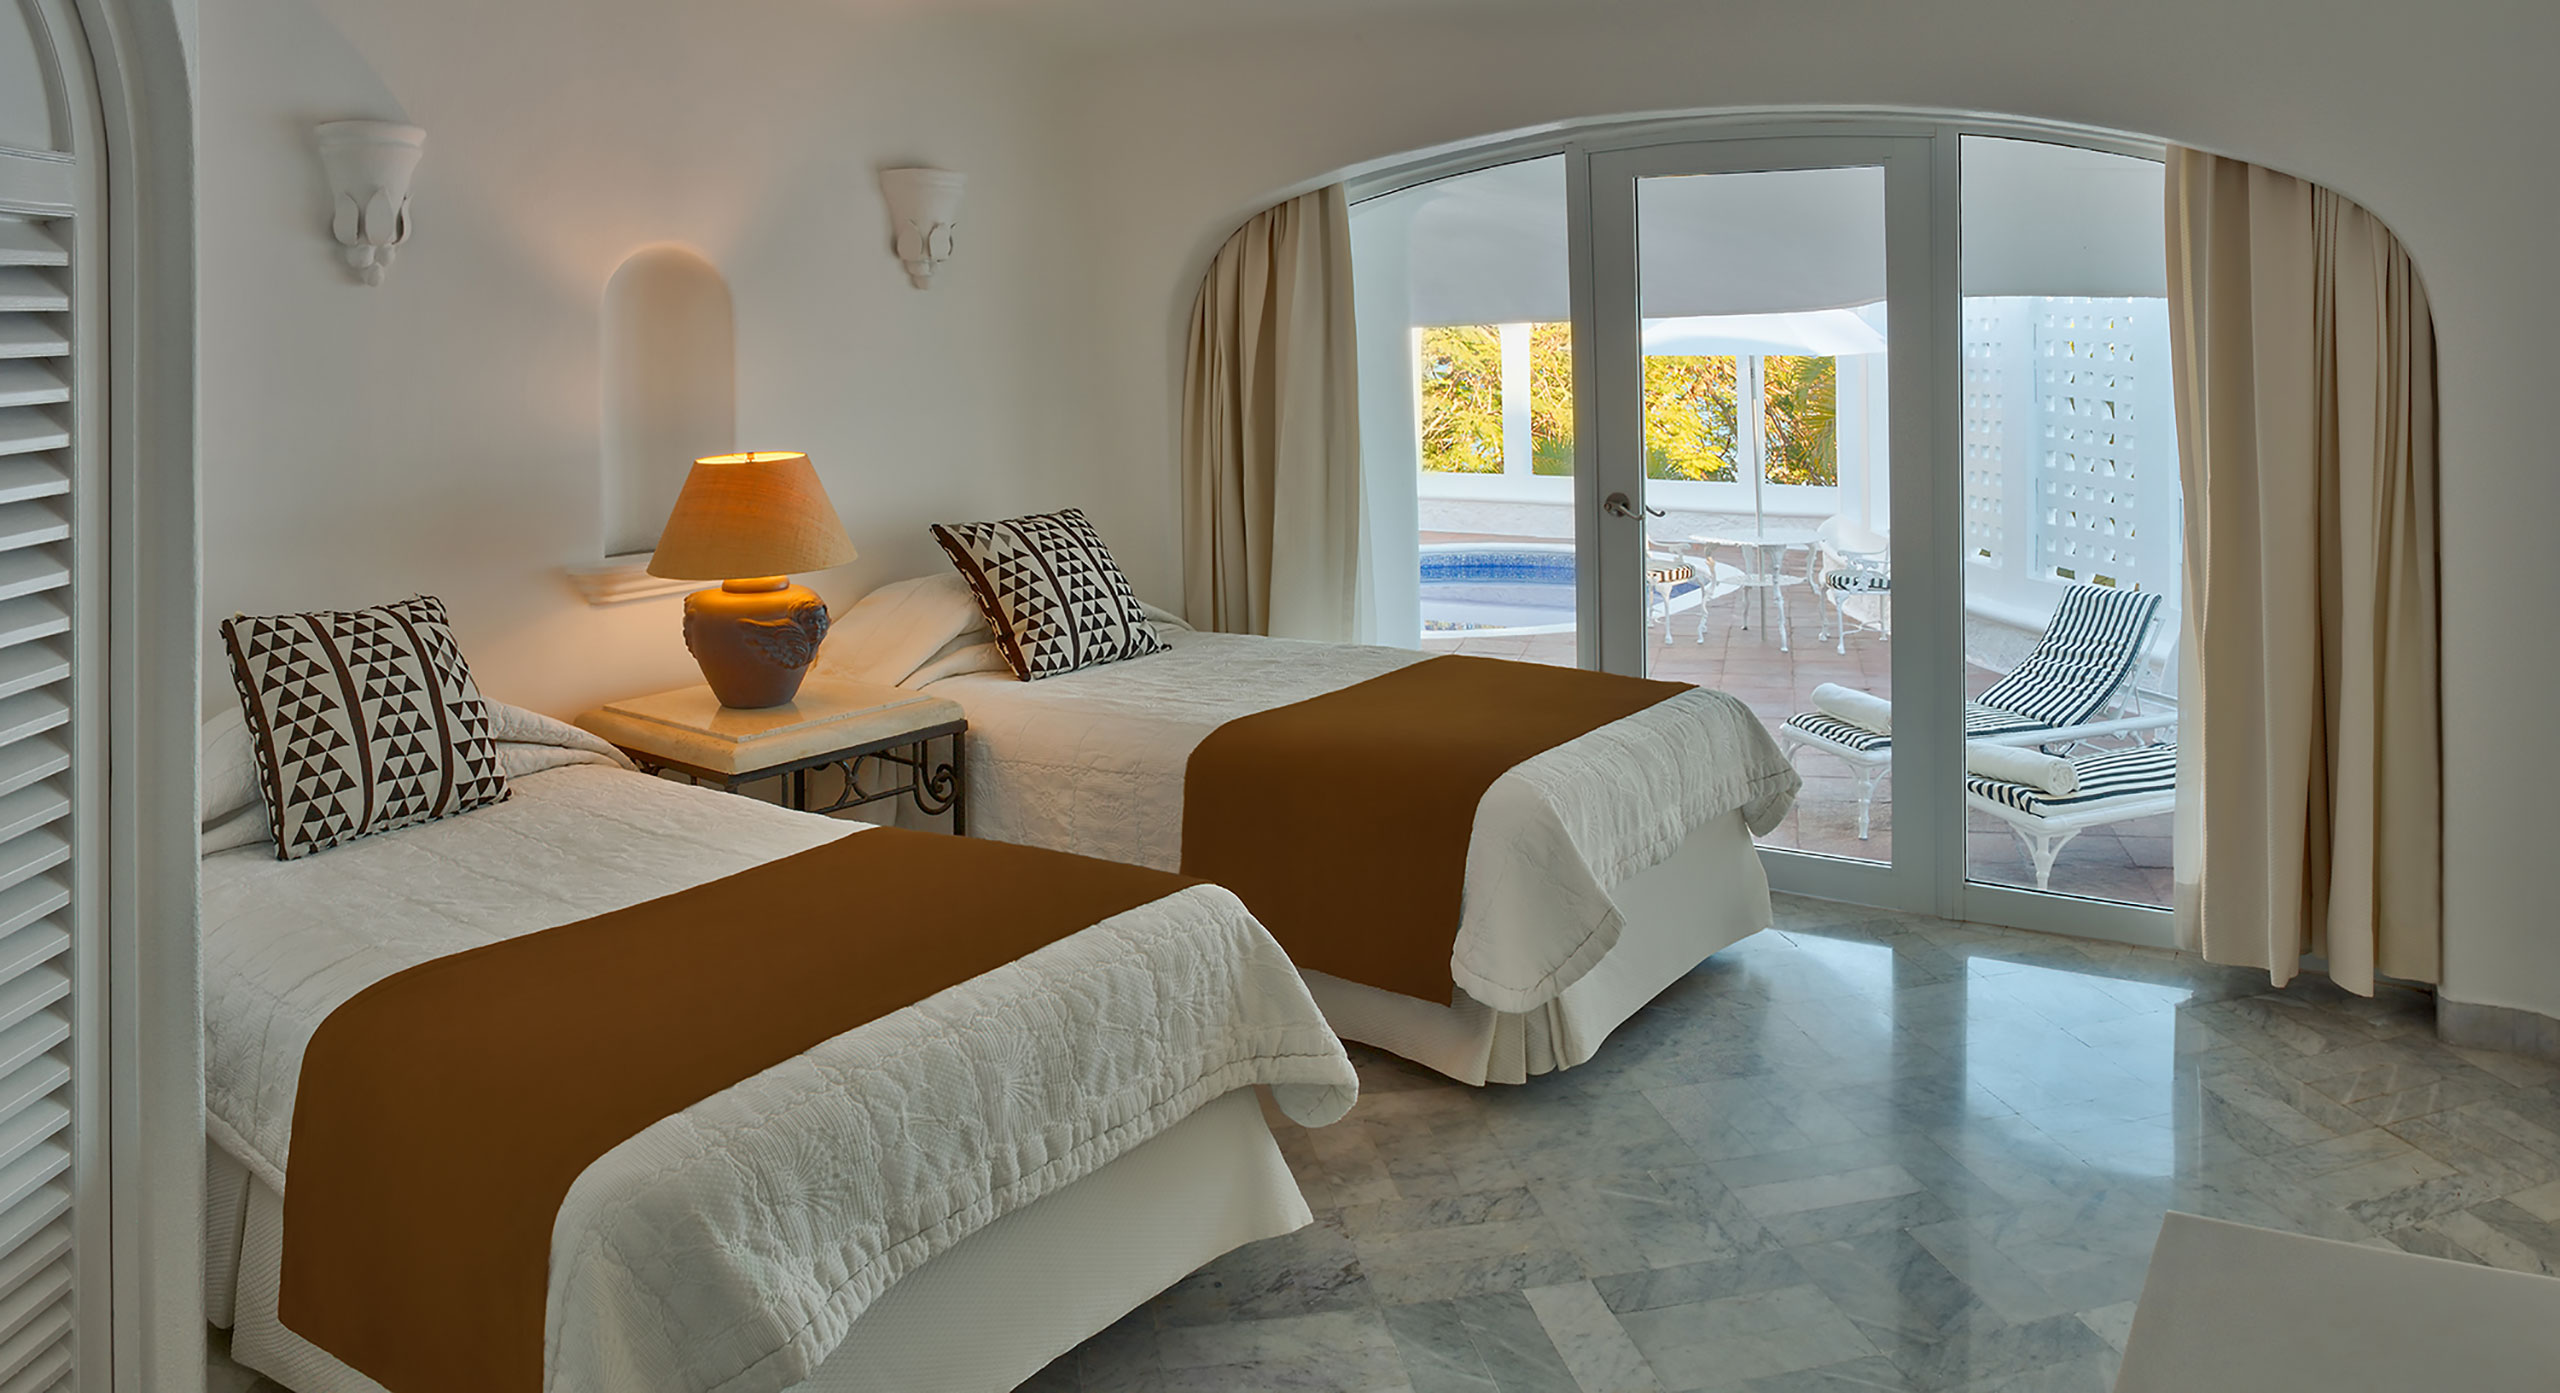 Suite Las Hadas 2 bedrooms at Hotel Las Hadas by Brisas